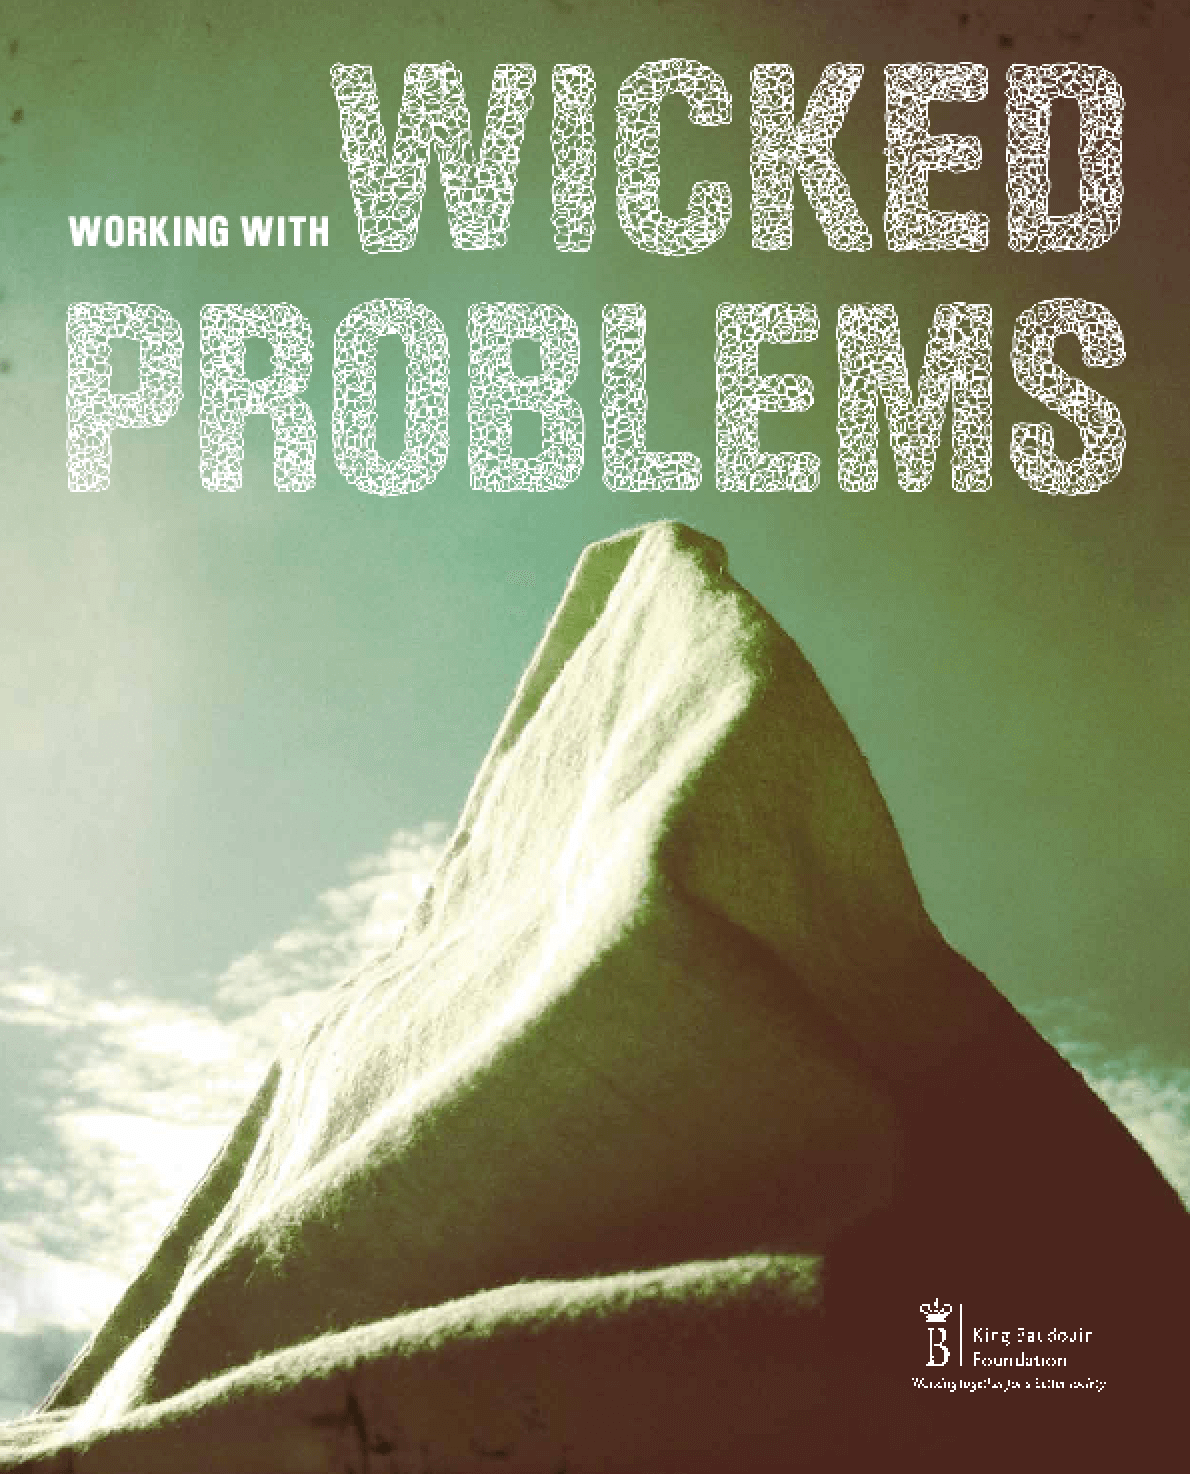 Working with Wicked Problems